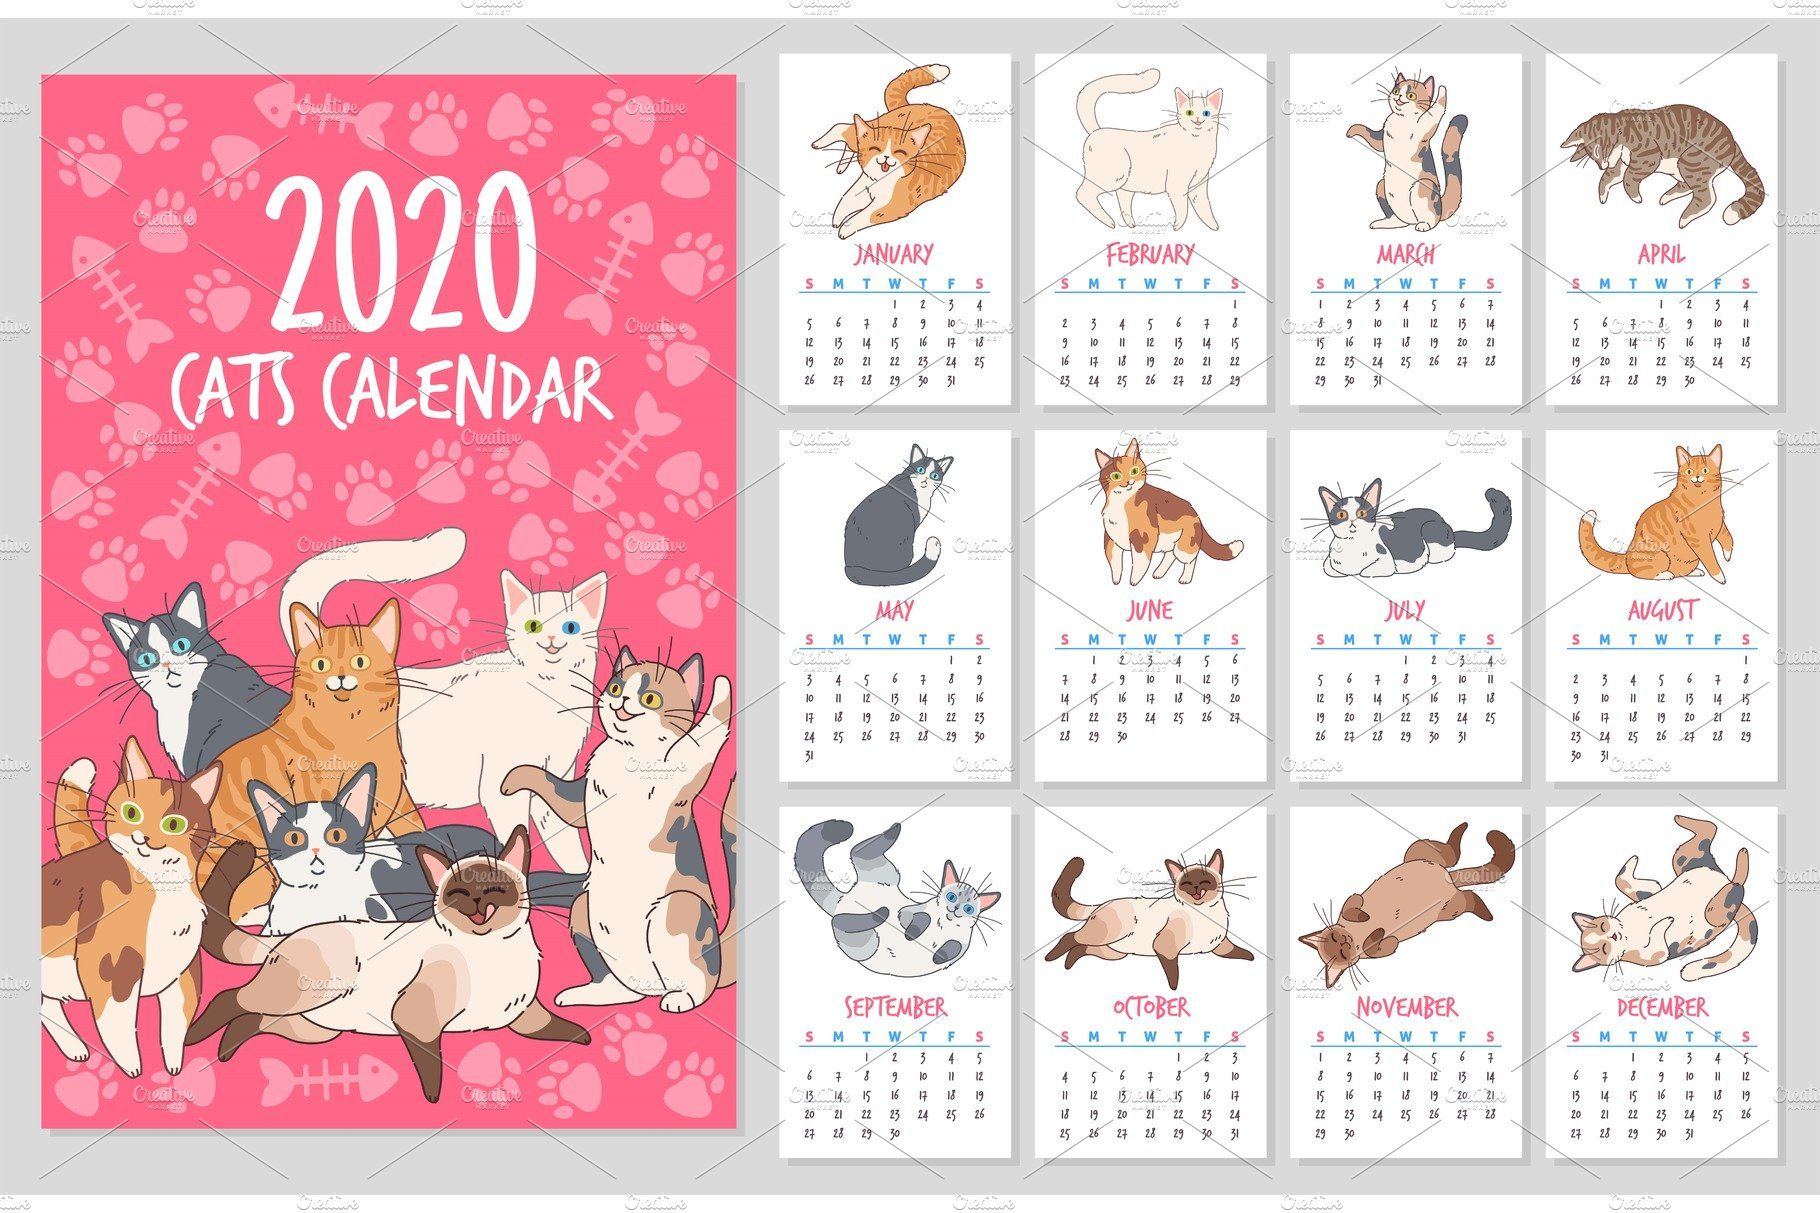 Cat Calendar 2020 Year Planner With In 2020 Cat Calendar Calendar Yearly Planner